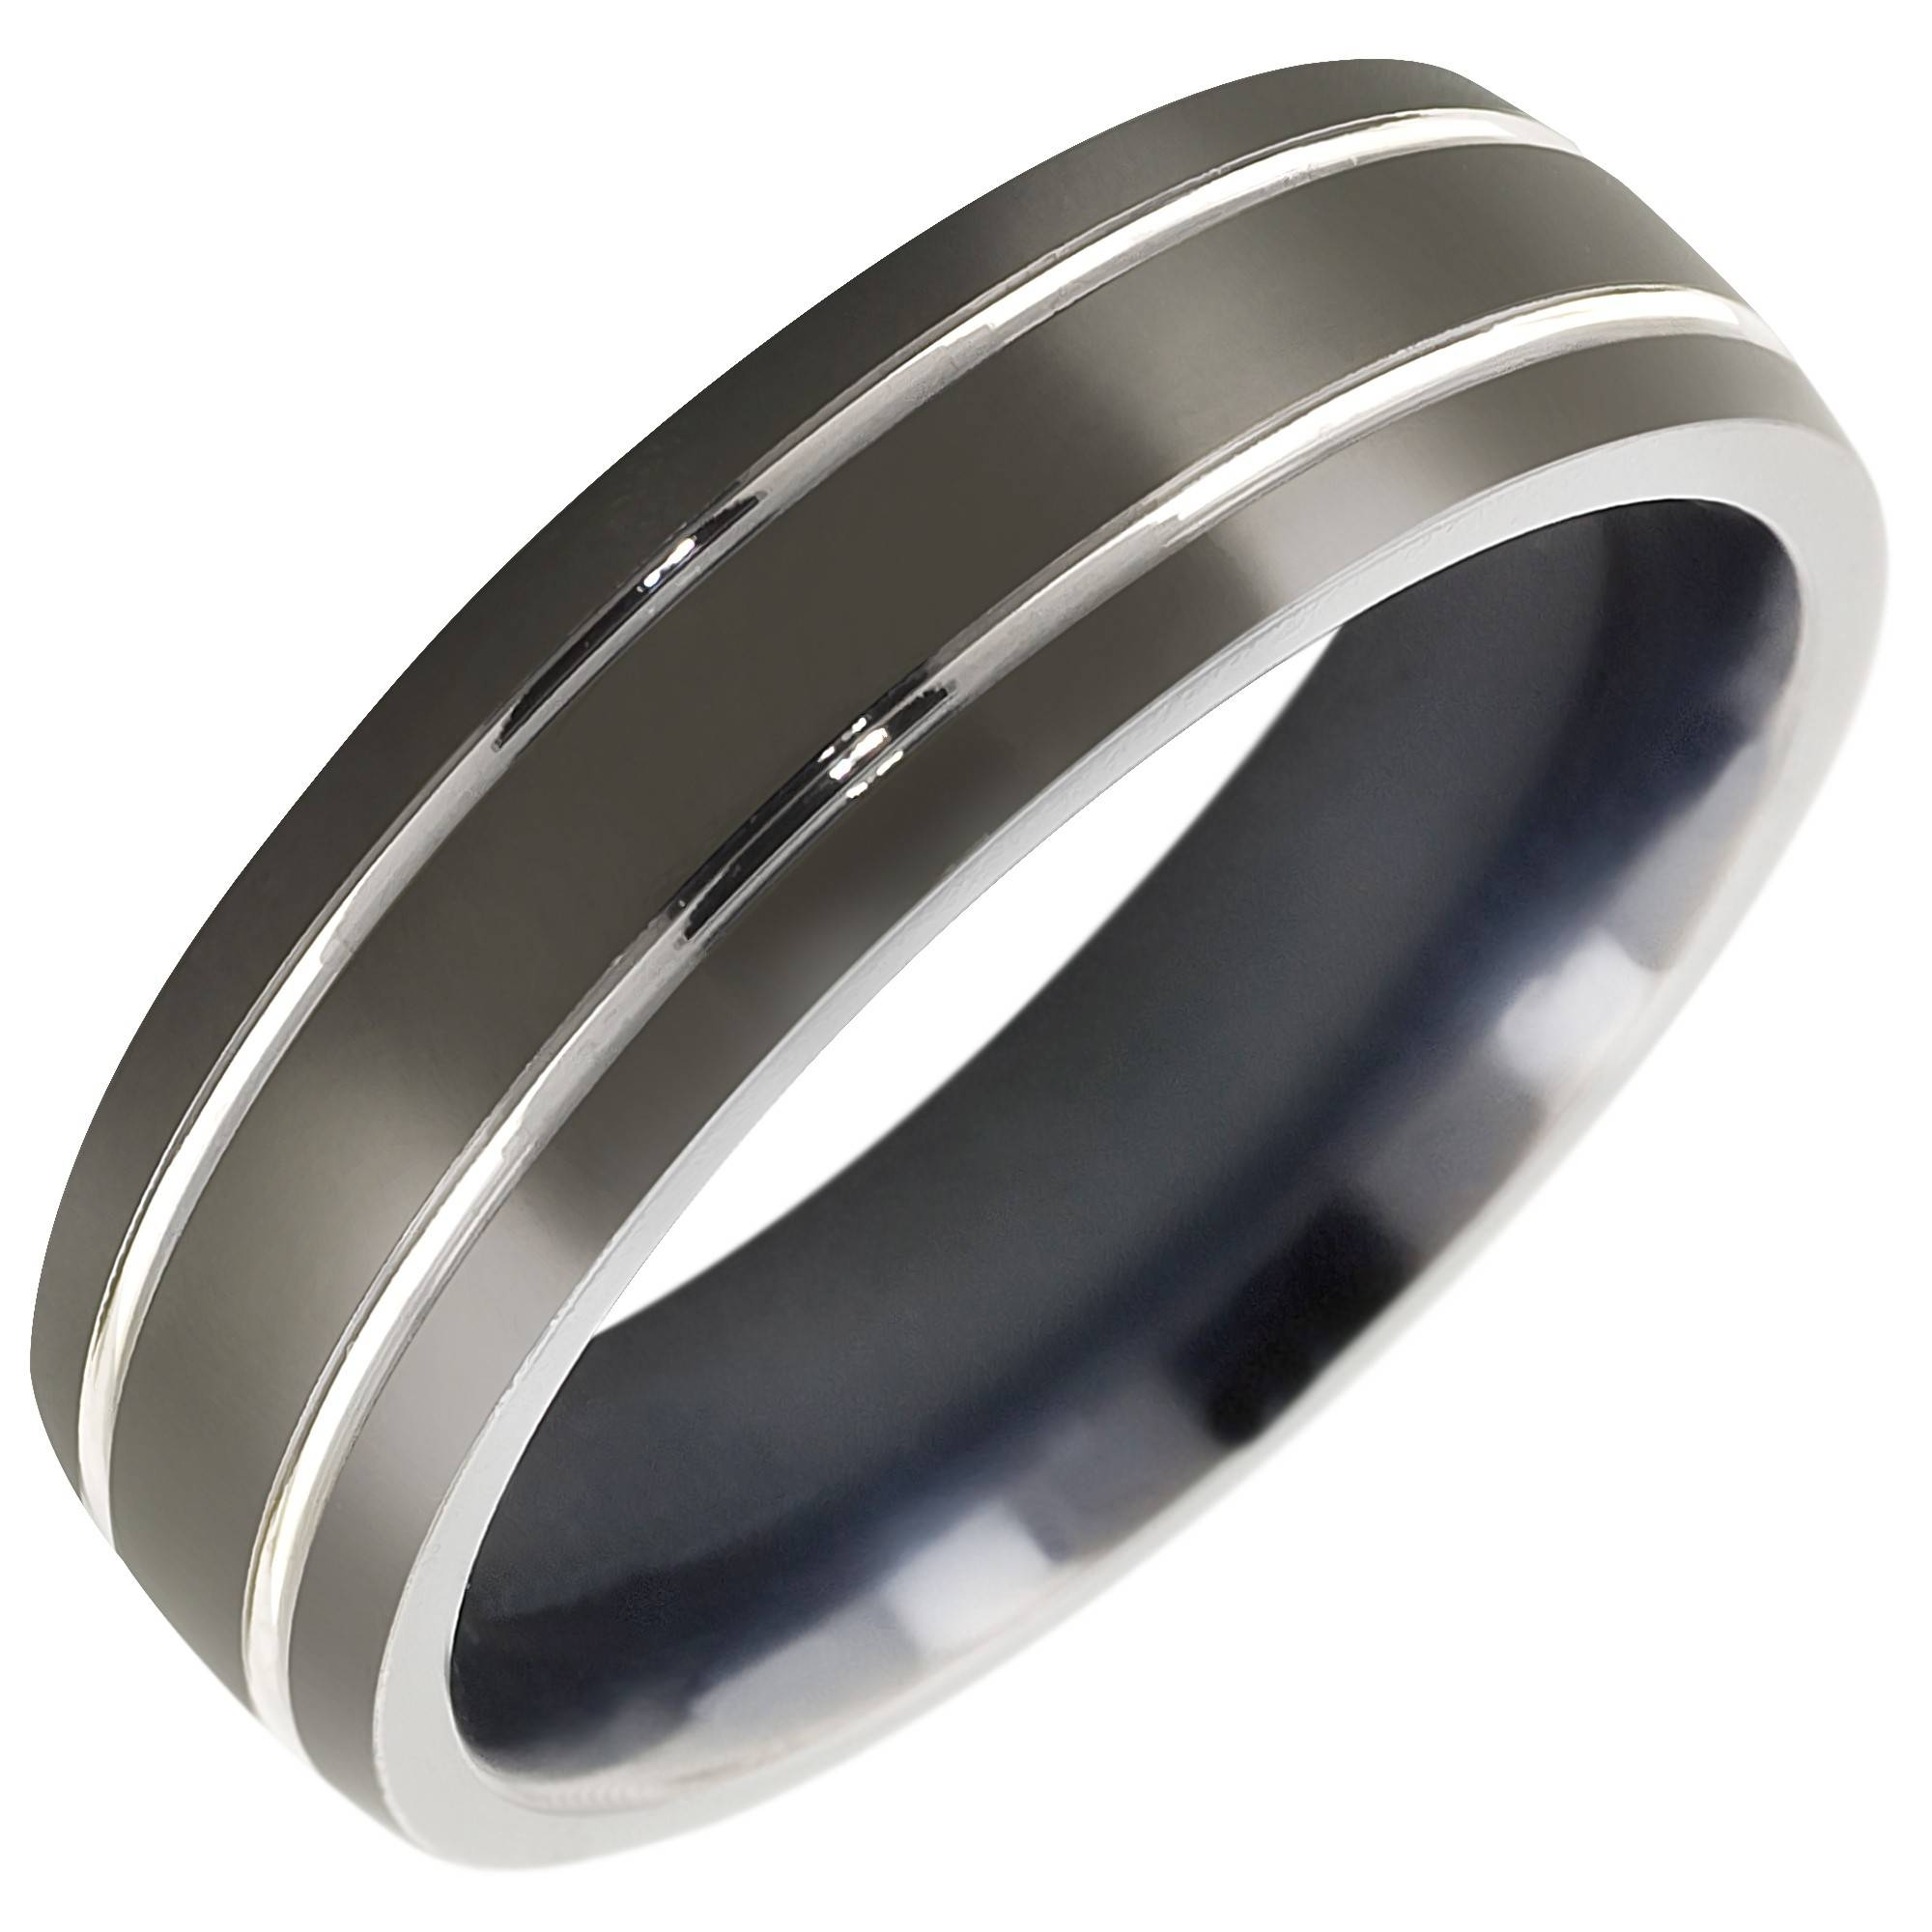 Mens Comfort Fit Wedding Band In Titanium (7Mm) Throughout Titanium Men Wedding Bands (View 4 of 15)